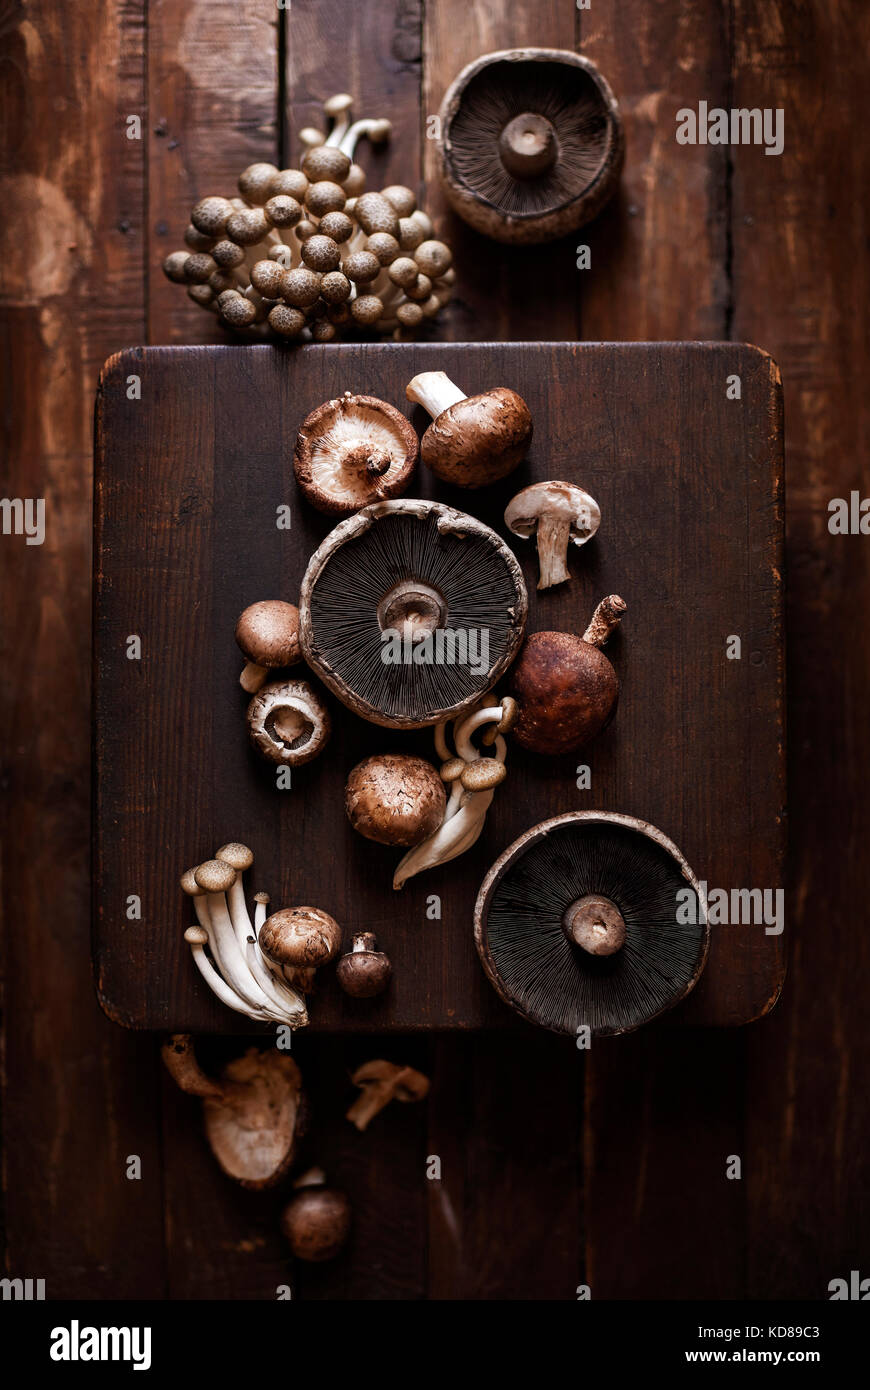 Variety of mushrooms spread out vertically across warm wood butcher blocks. - Stock Image